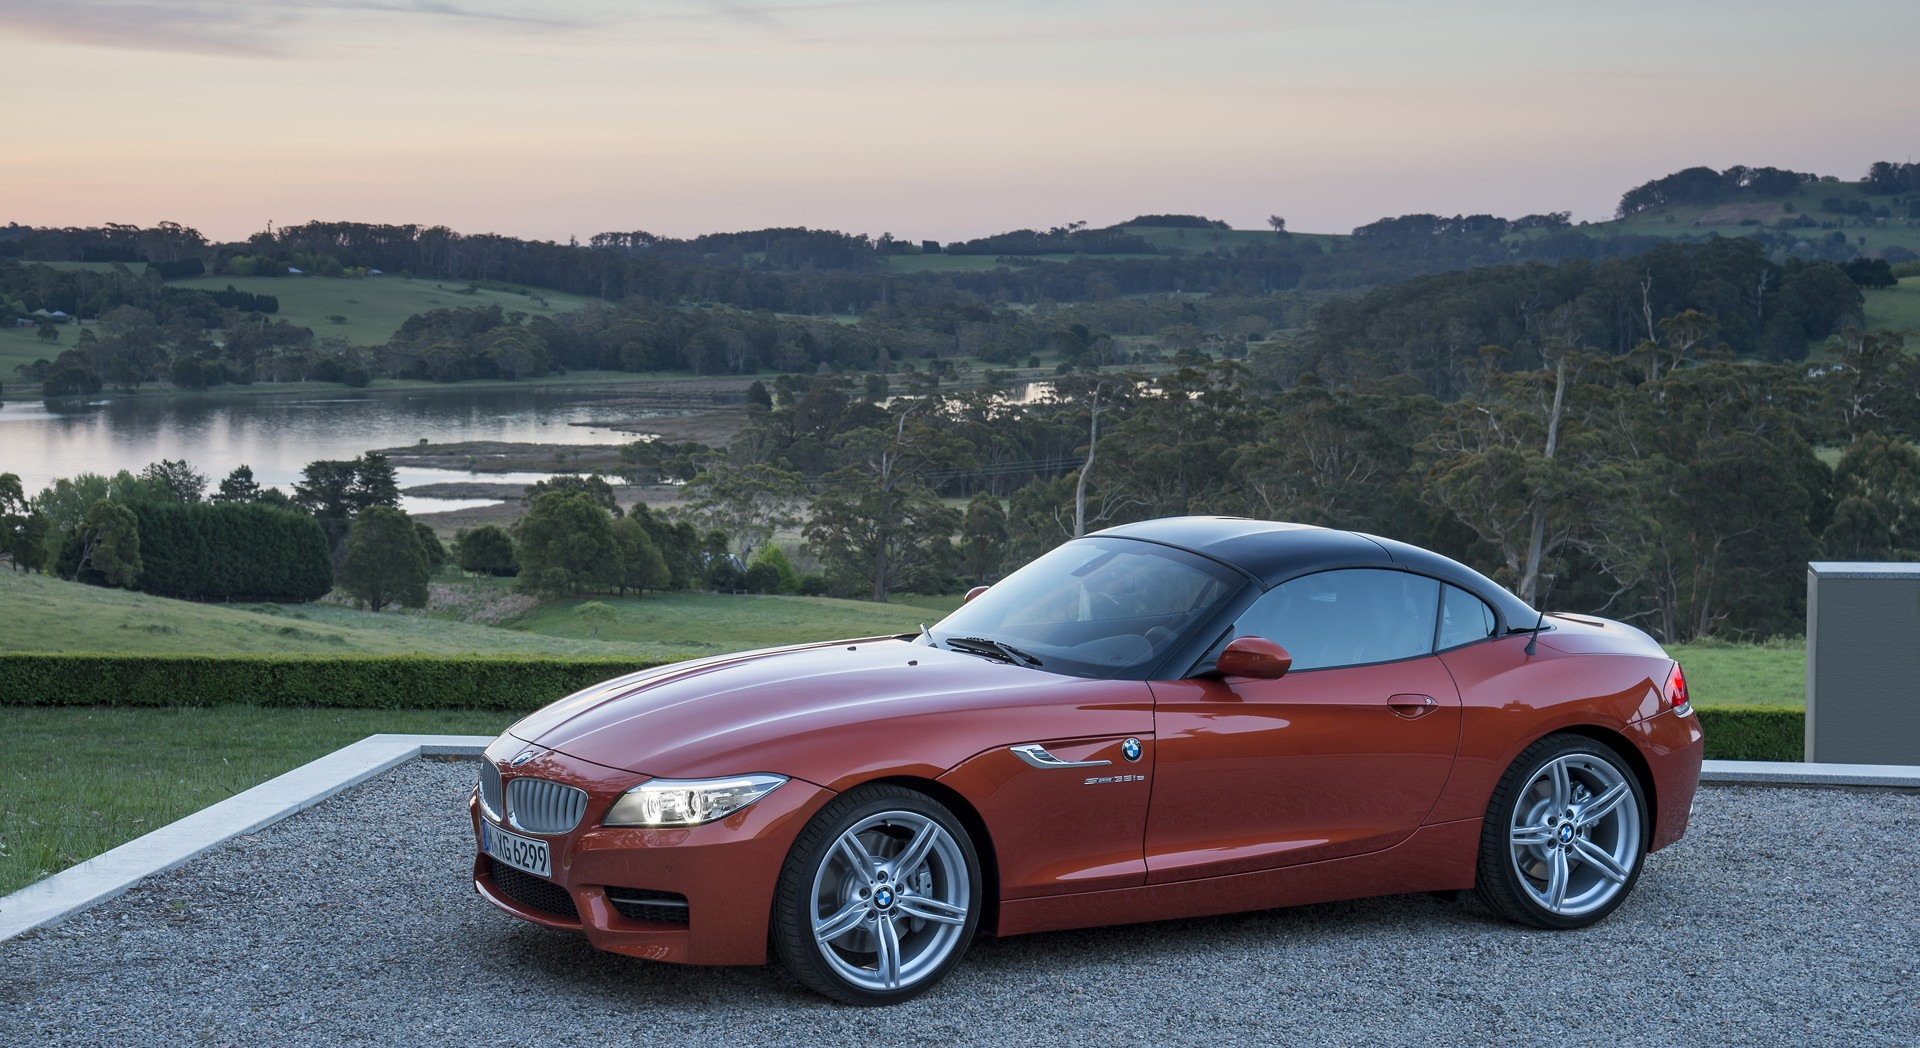 bmw z4 orange nice car